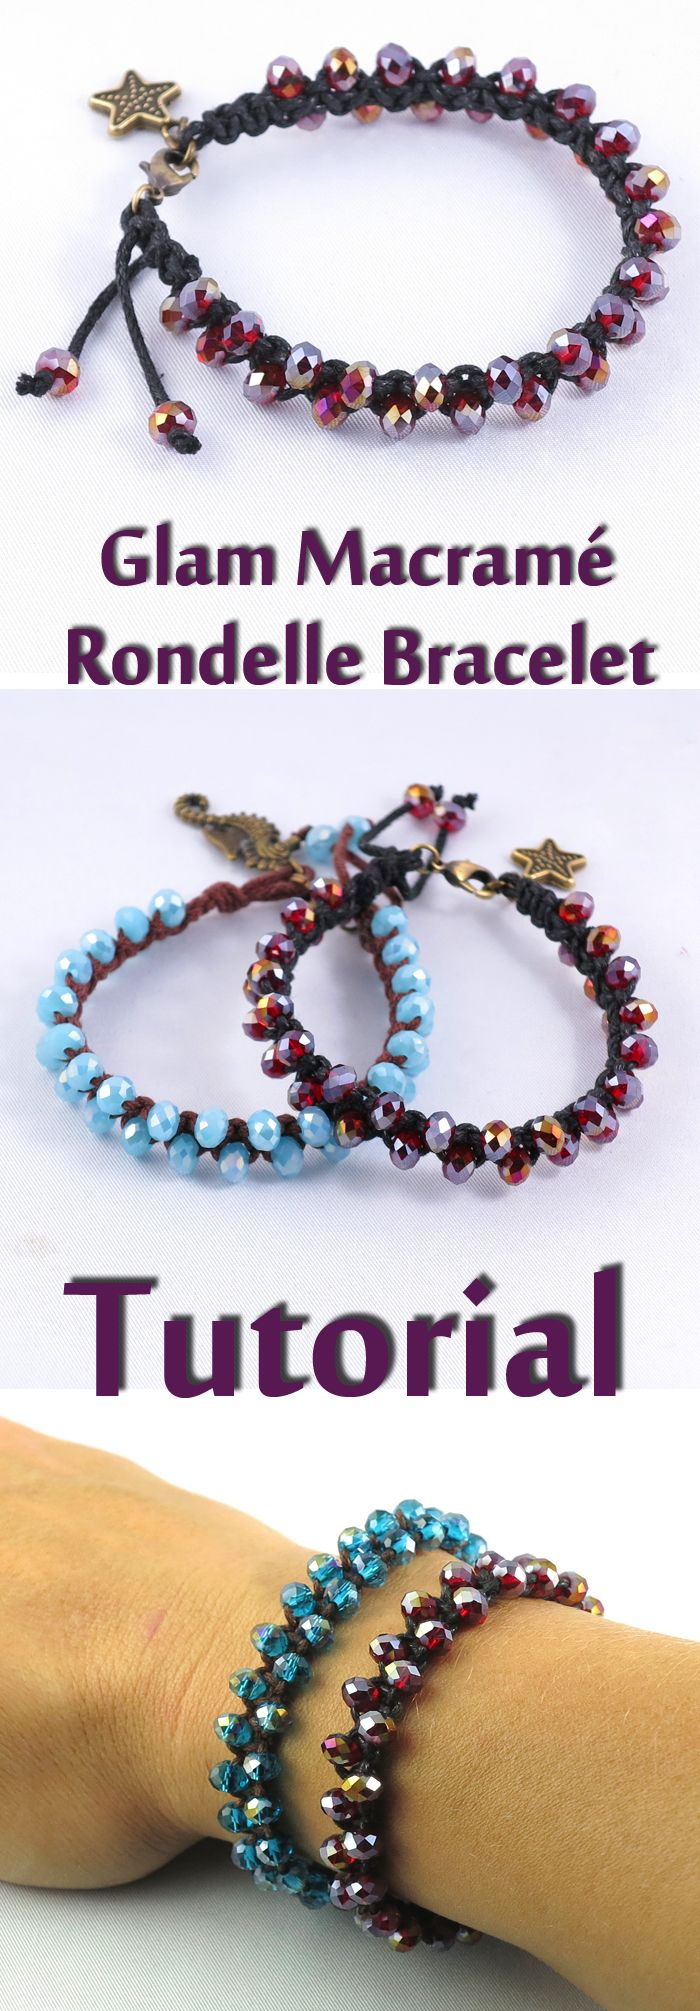 SIMPLE TUTORIAL to make glamorous bracelet with Rondelle Crystal Beads.  #tutorial #beading #bracelet #fashionablejewelry #jewelry #macrame #rondellebeads